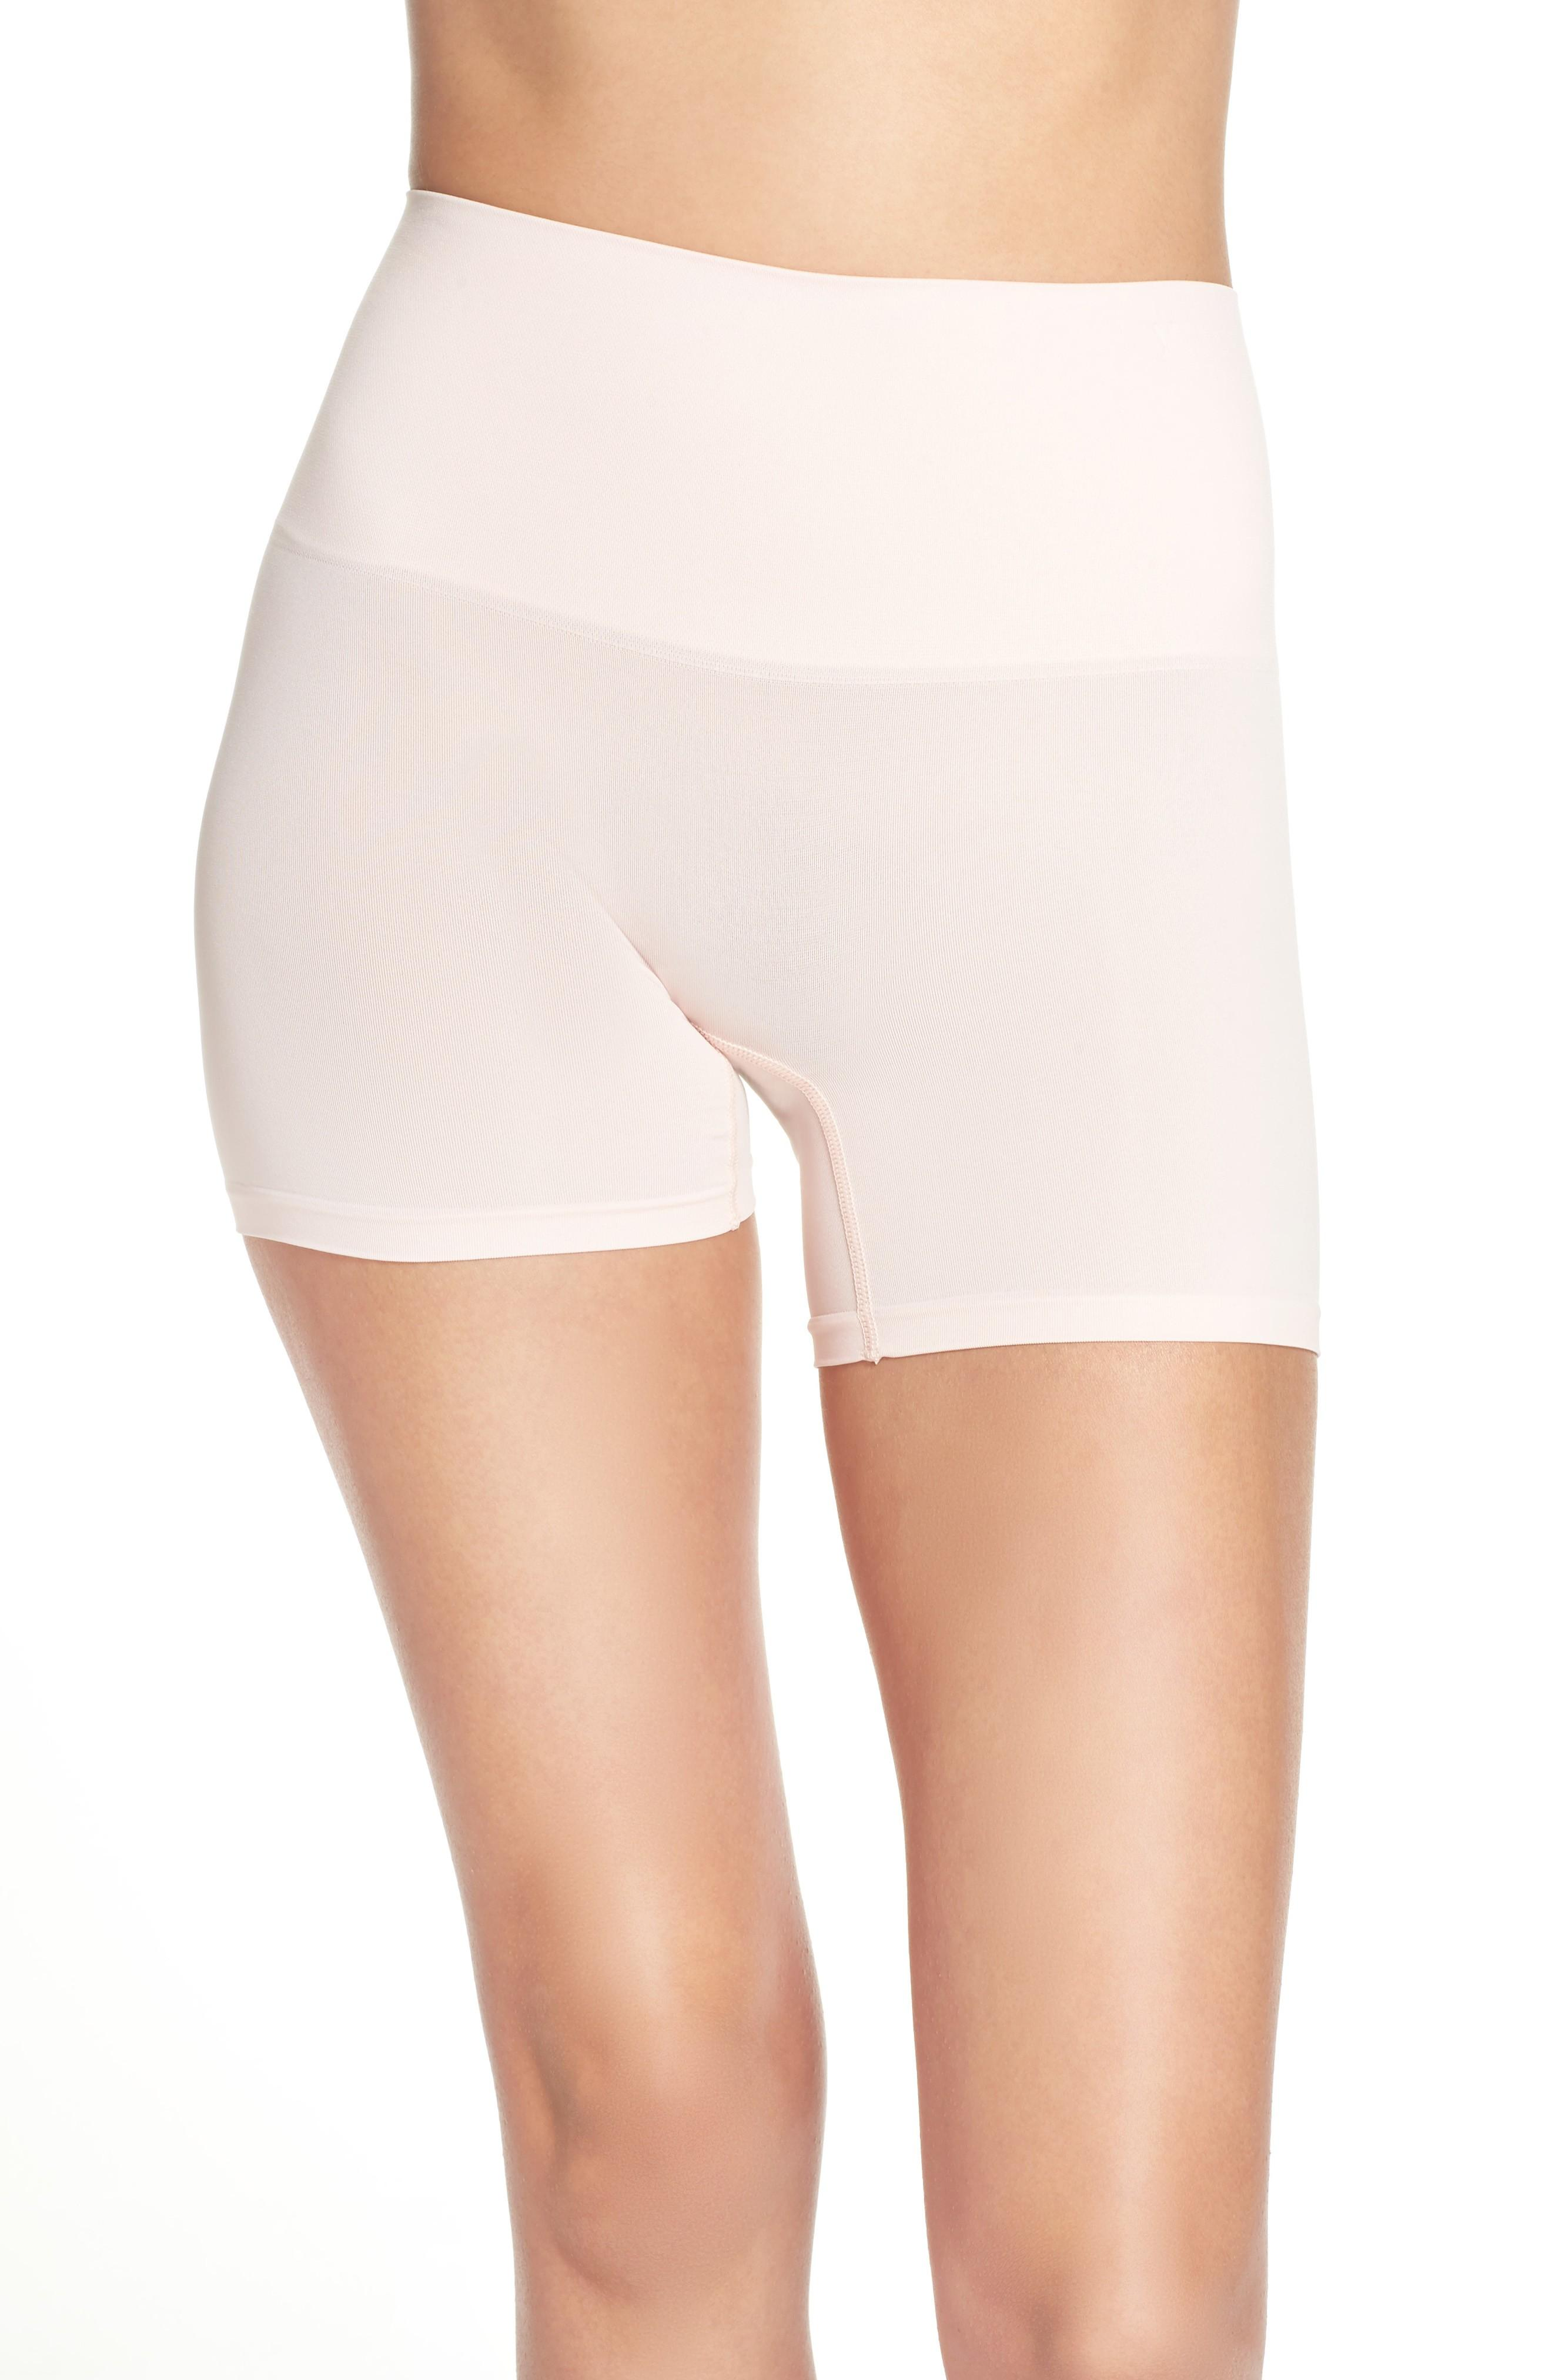 Yummie Ultralight Seamless Shaping Shorts In English Rose